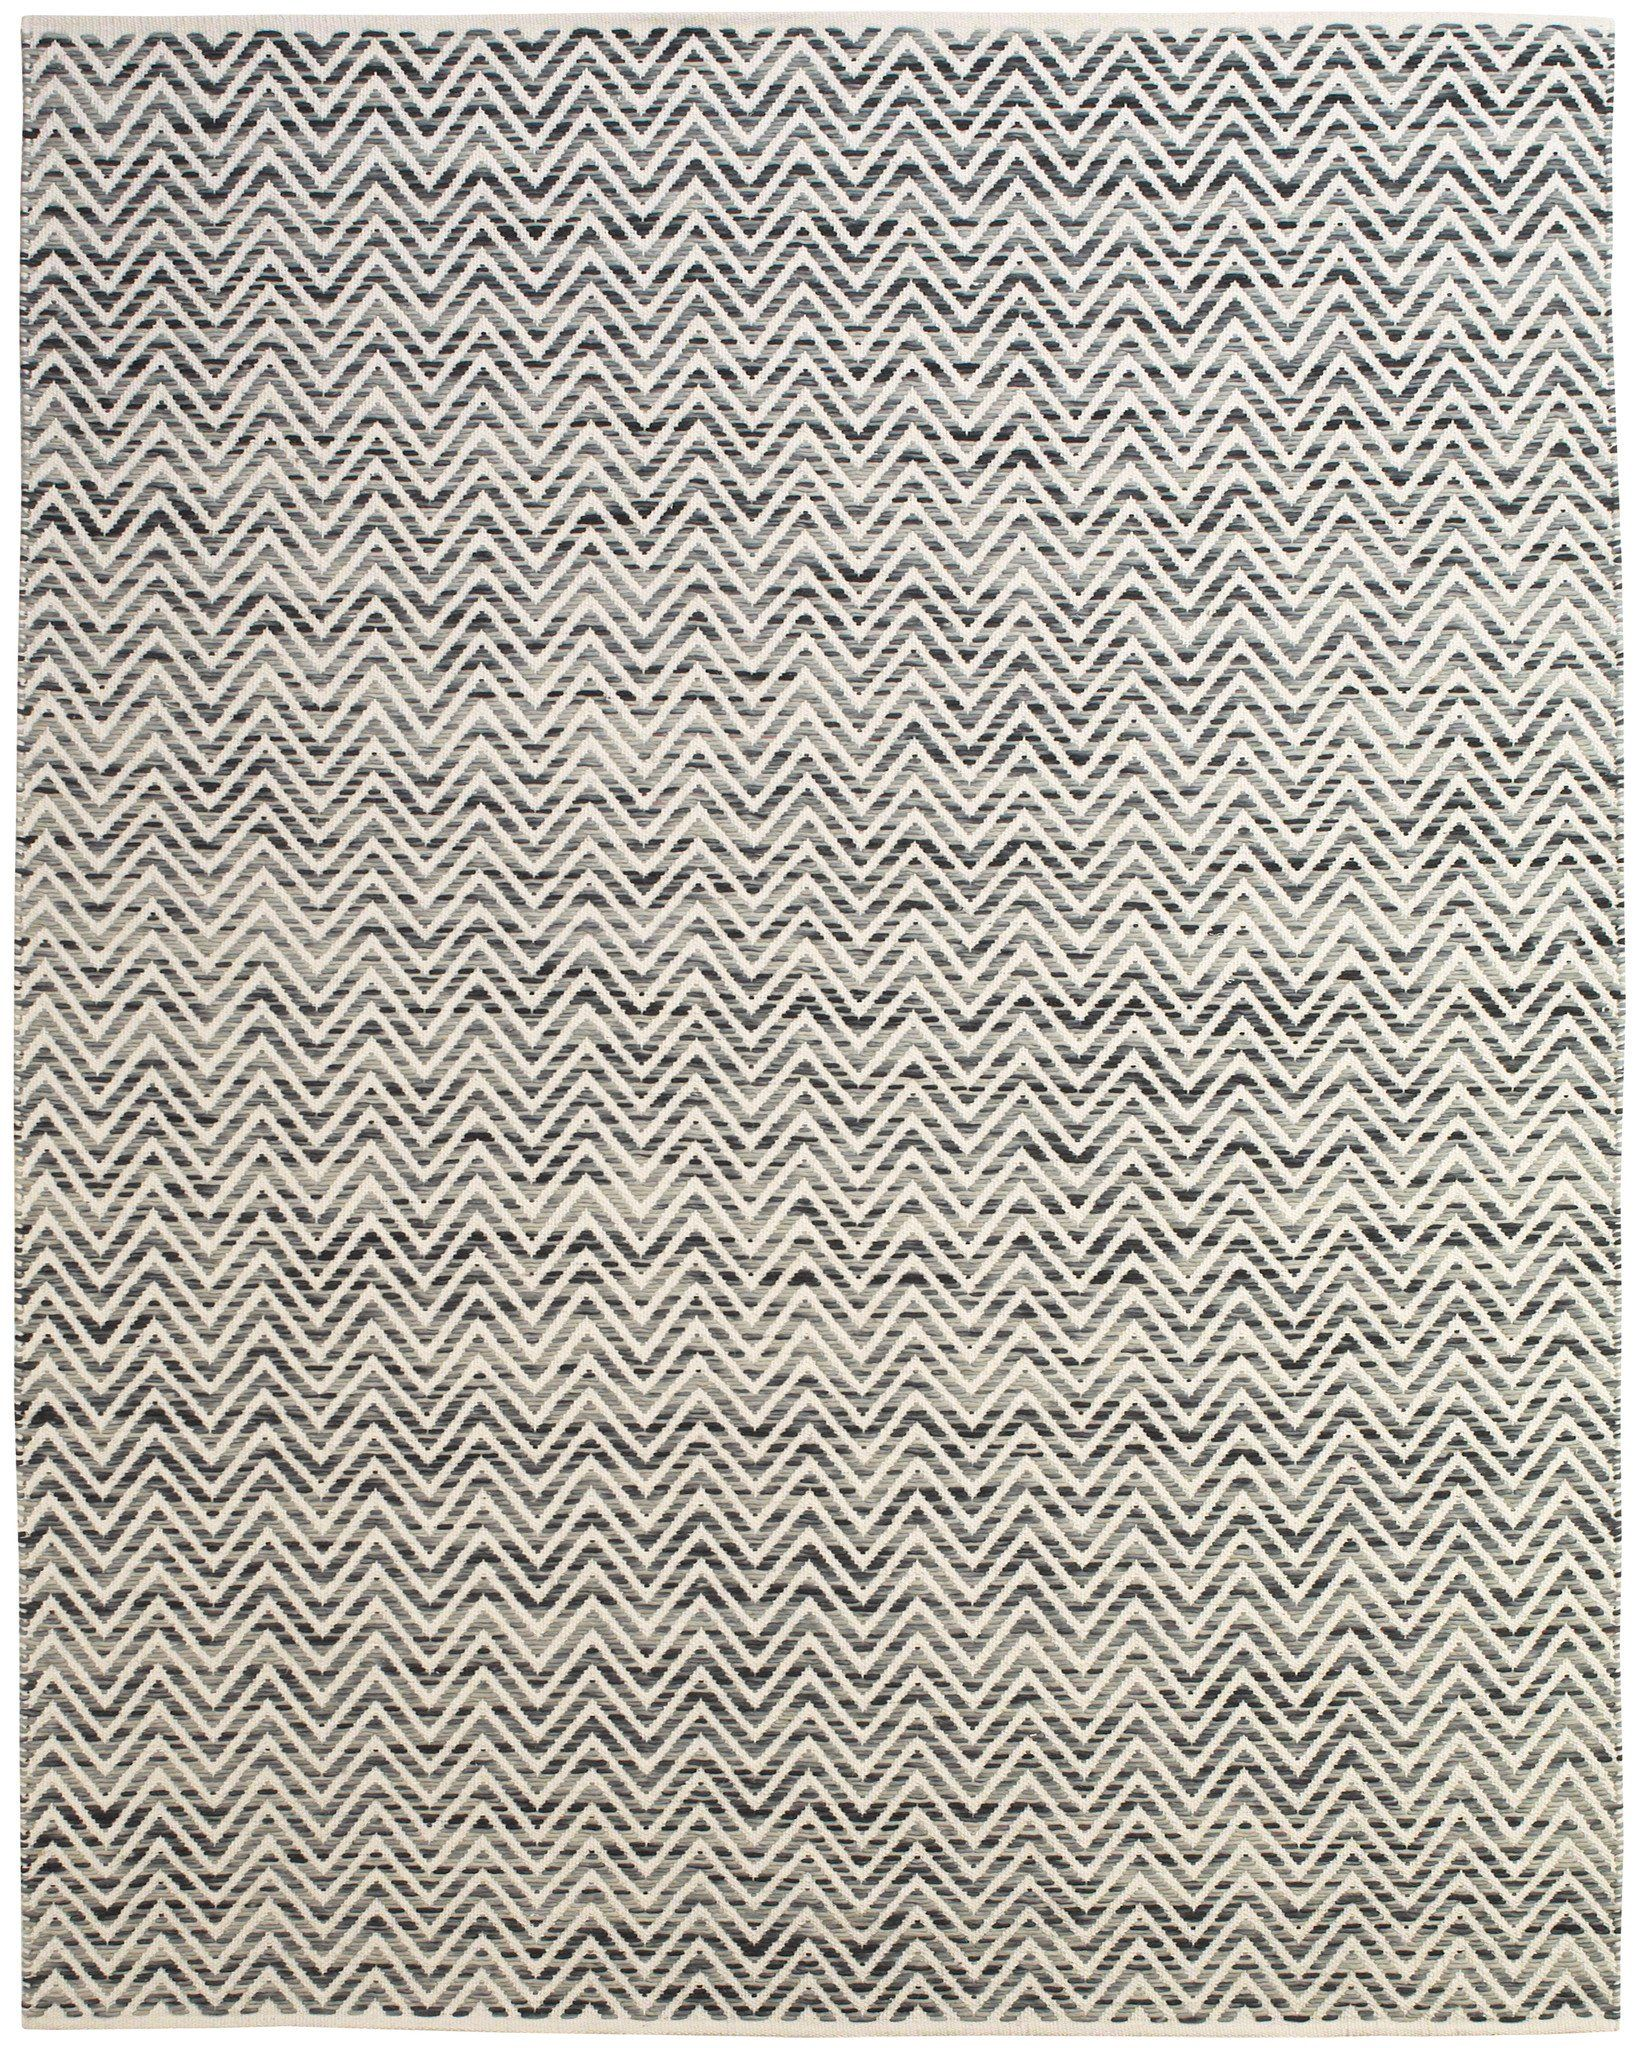 Gobi Collection Flat Weave Dhurrie Area Rug In Dark Blue And Gray By B